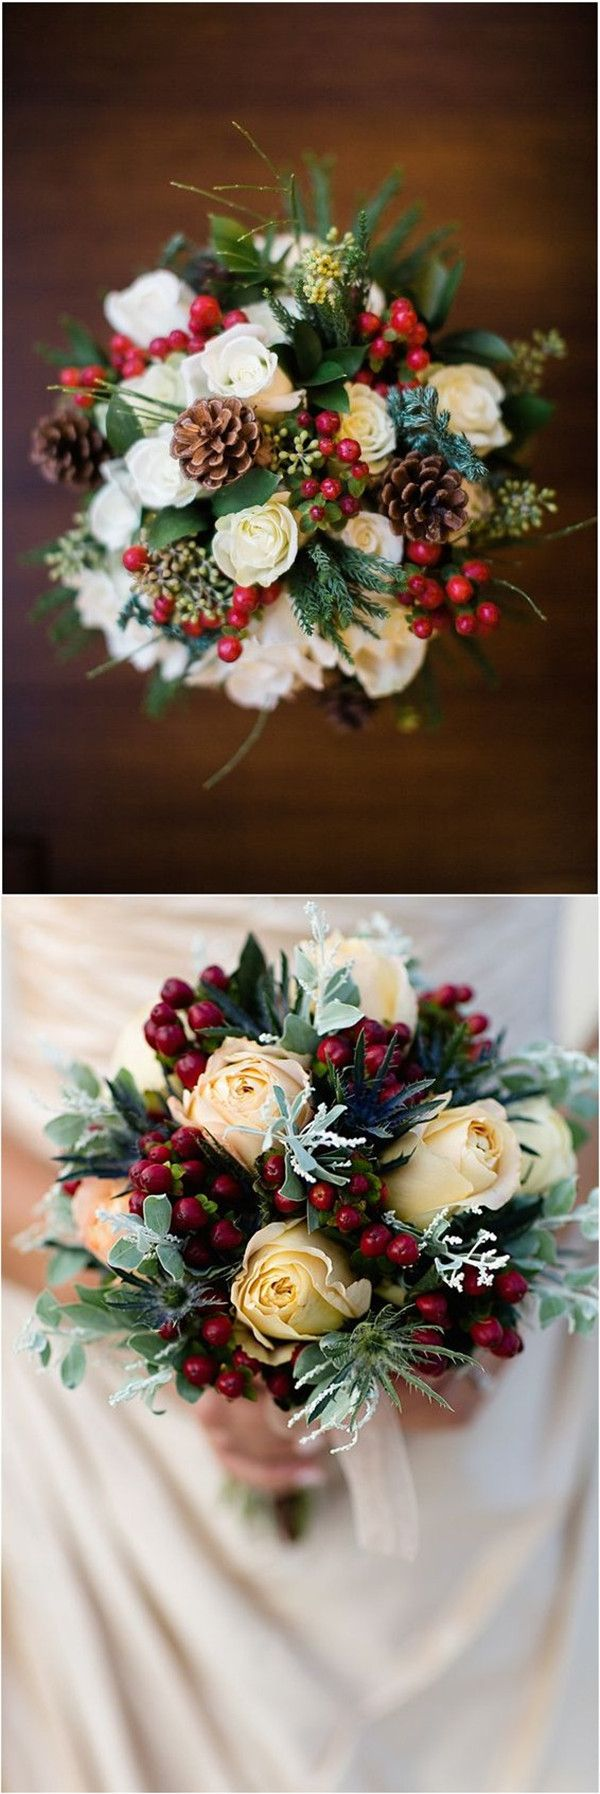 Berries and Pinecone Christmas Wedding Bouquet